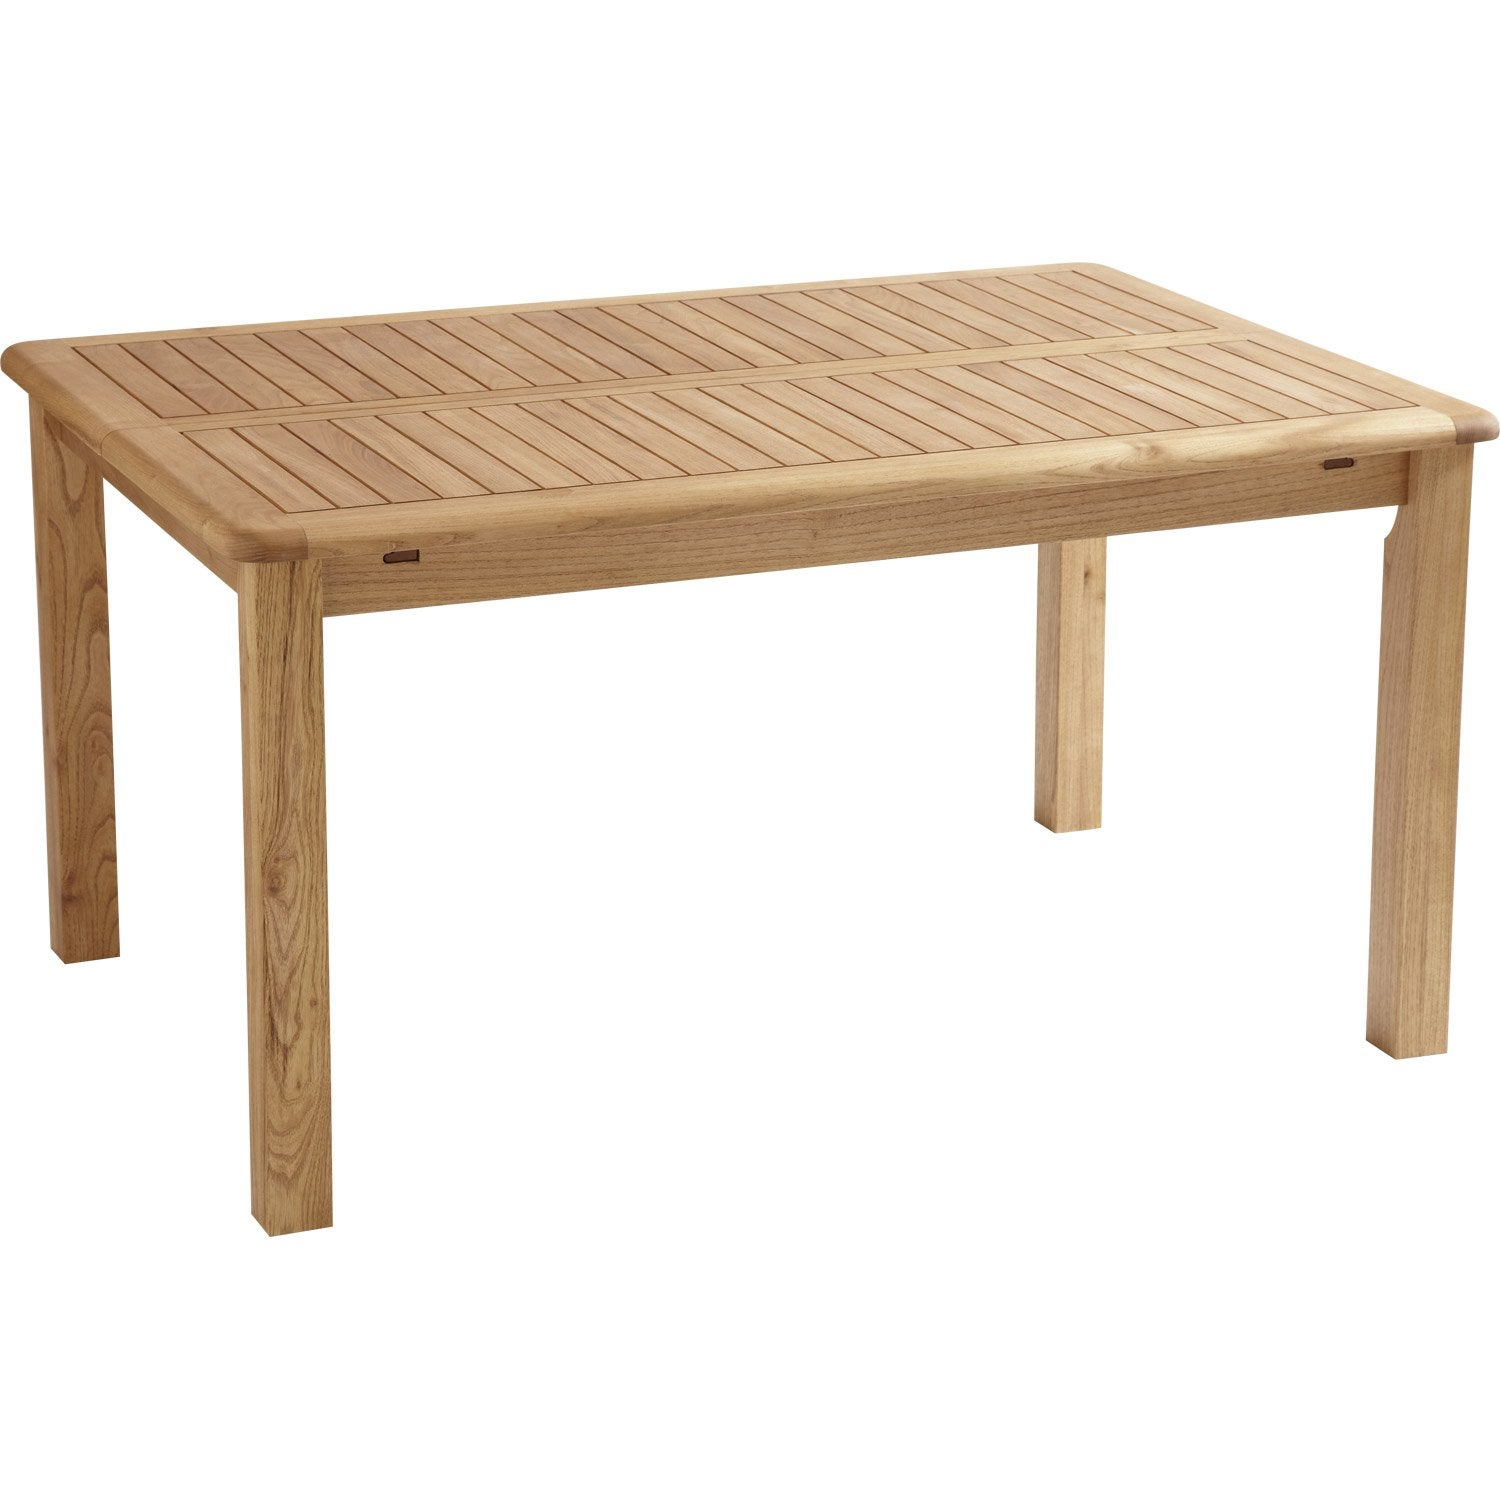 Table de jardin rectangulaire en bois for Table de jardin modulable